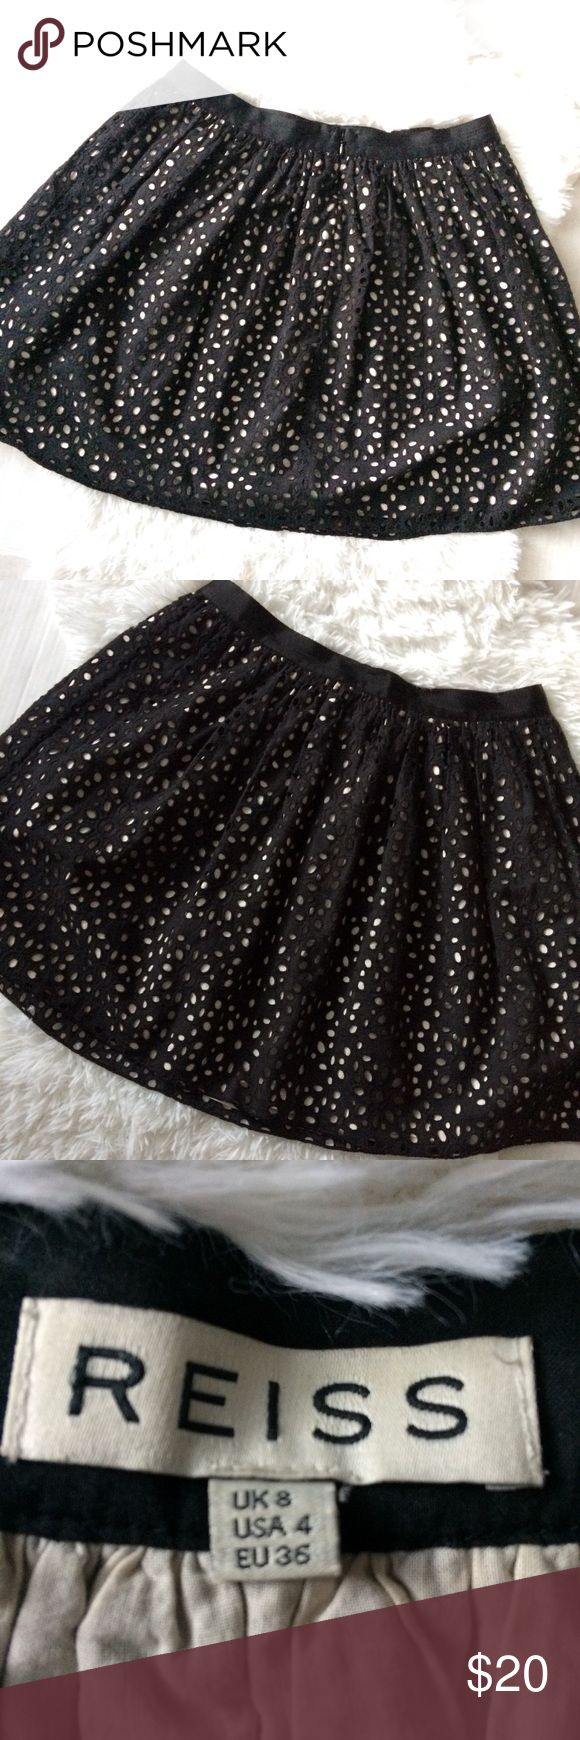 Reiss black and white skirt Adorable Reiss black and white eyelet skirt. Perfect with tights this time of year or on its own with heels or flats. Size US 4. Reiss Skirts